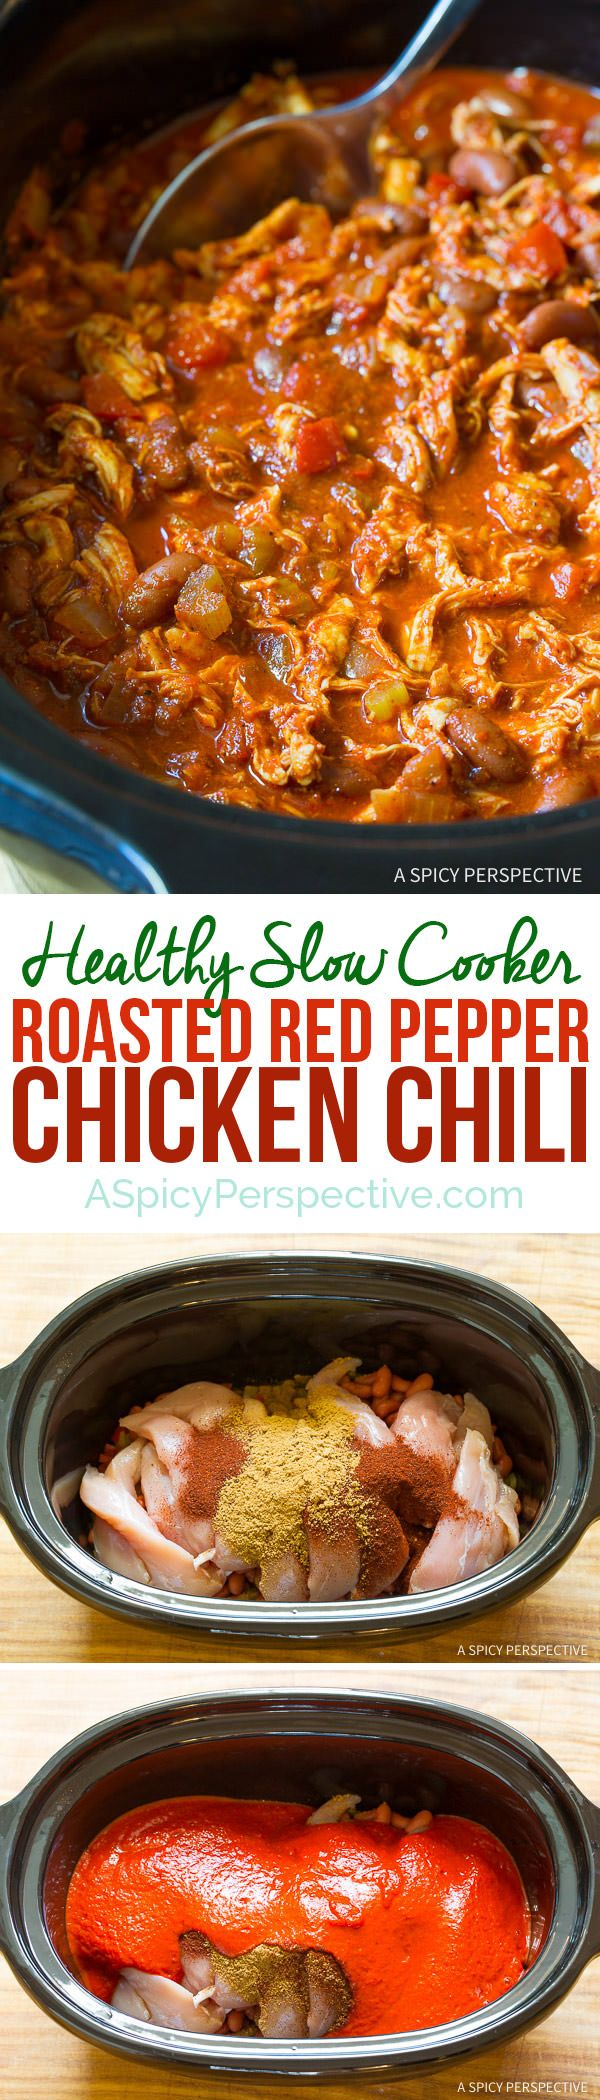 Healthy Slow Cooker Roasted Red Pepper Chicken Chili Recipe (Gluten Free & Dairy Free) | ASpicyPerpective.com - sub sweet potatoes for beans